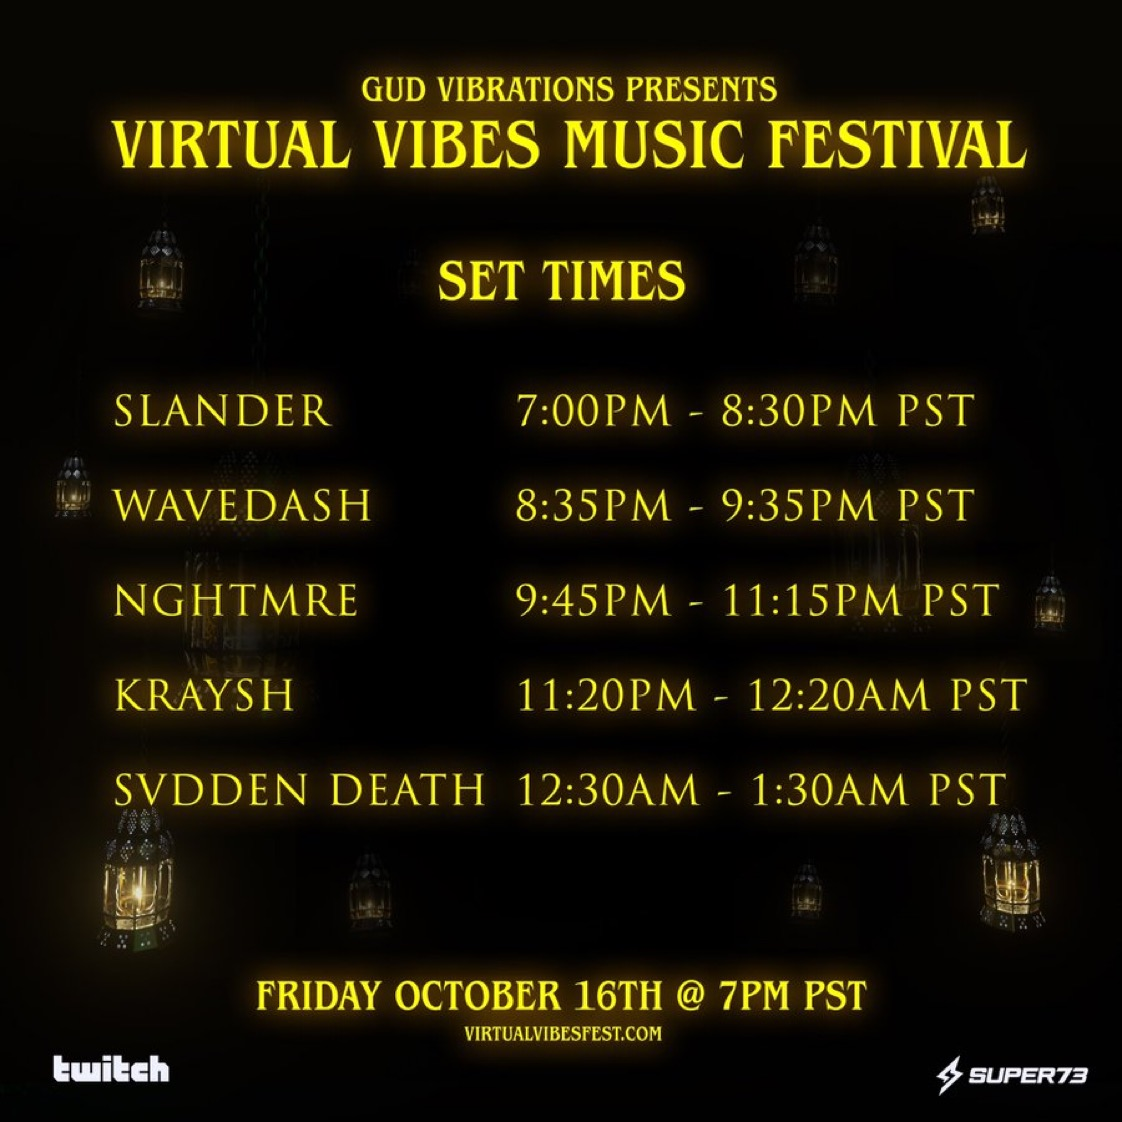 Virtual Vibes Music Festival Set Times